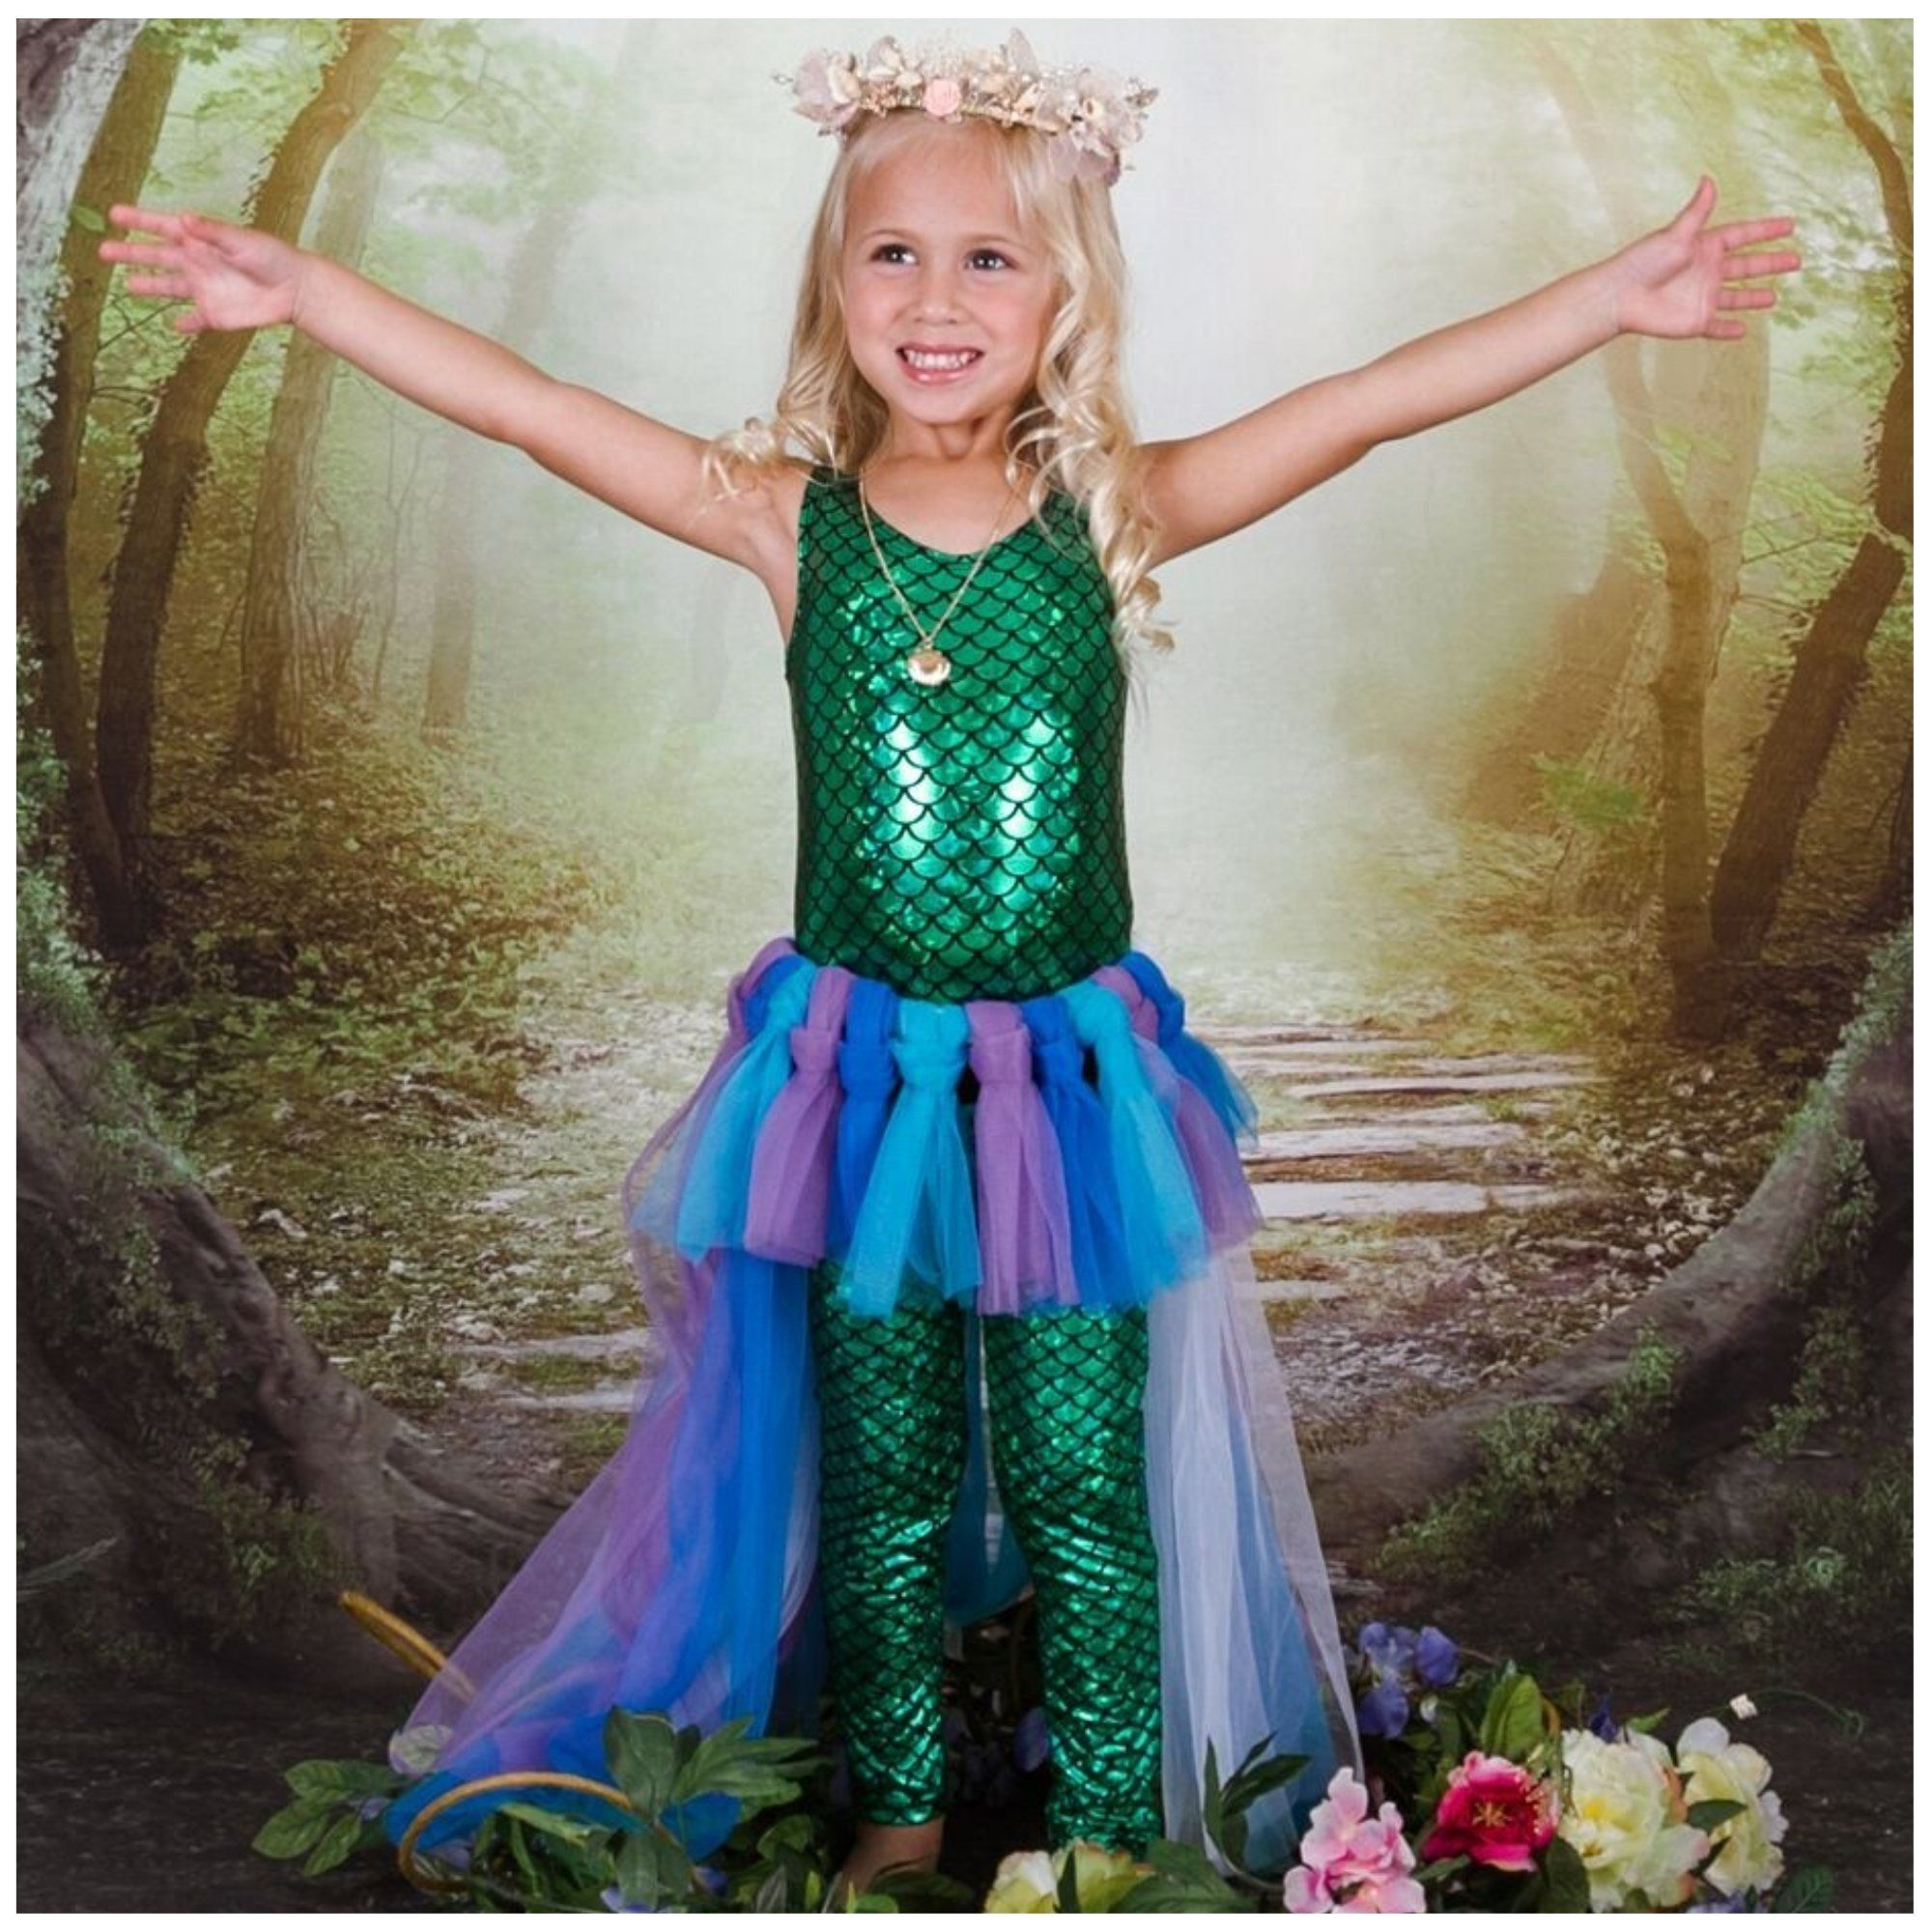 f37c2713a2 Girls Mermaid Tulle Skirt & Fish Scale Leotard Halloween Costume in ...